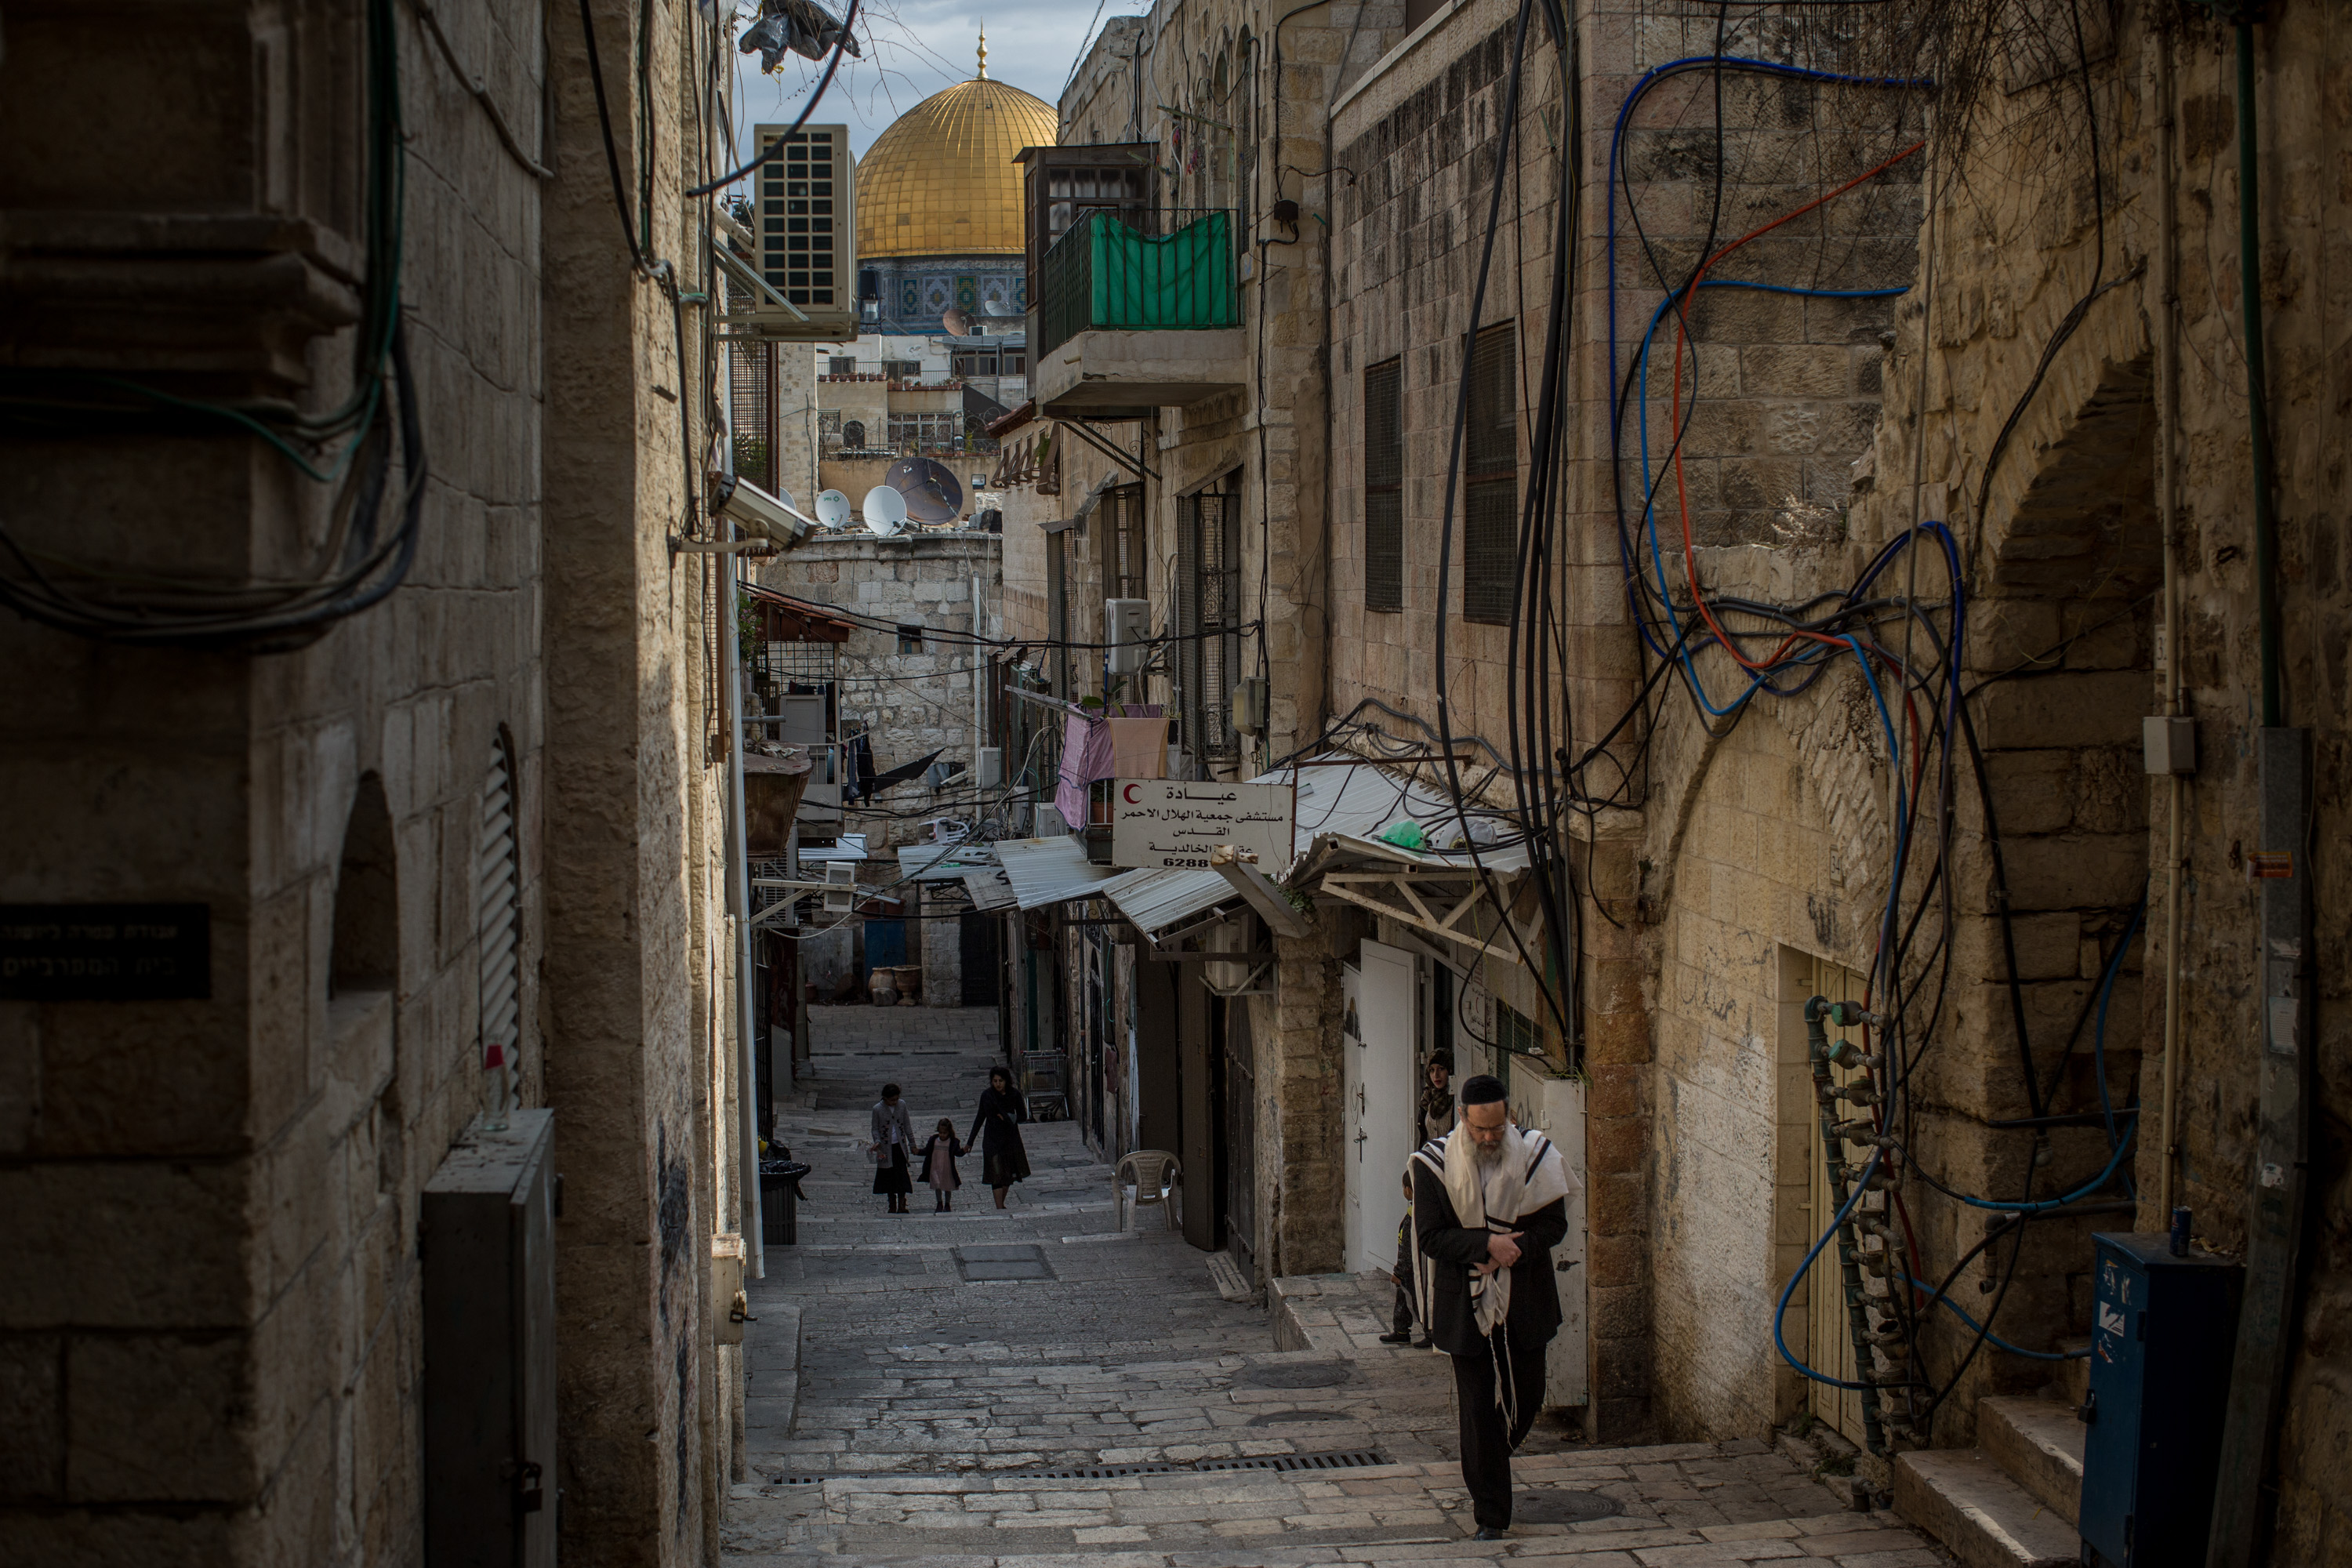 A Jewish man is seen walking through the Old City during shabbat, the Jewish day of rest and seventh day of the week, on January 14, 2017 in Jerusalem, Israel.